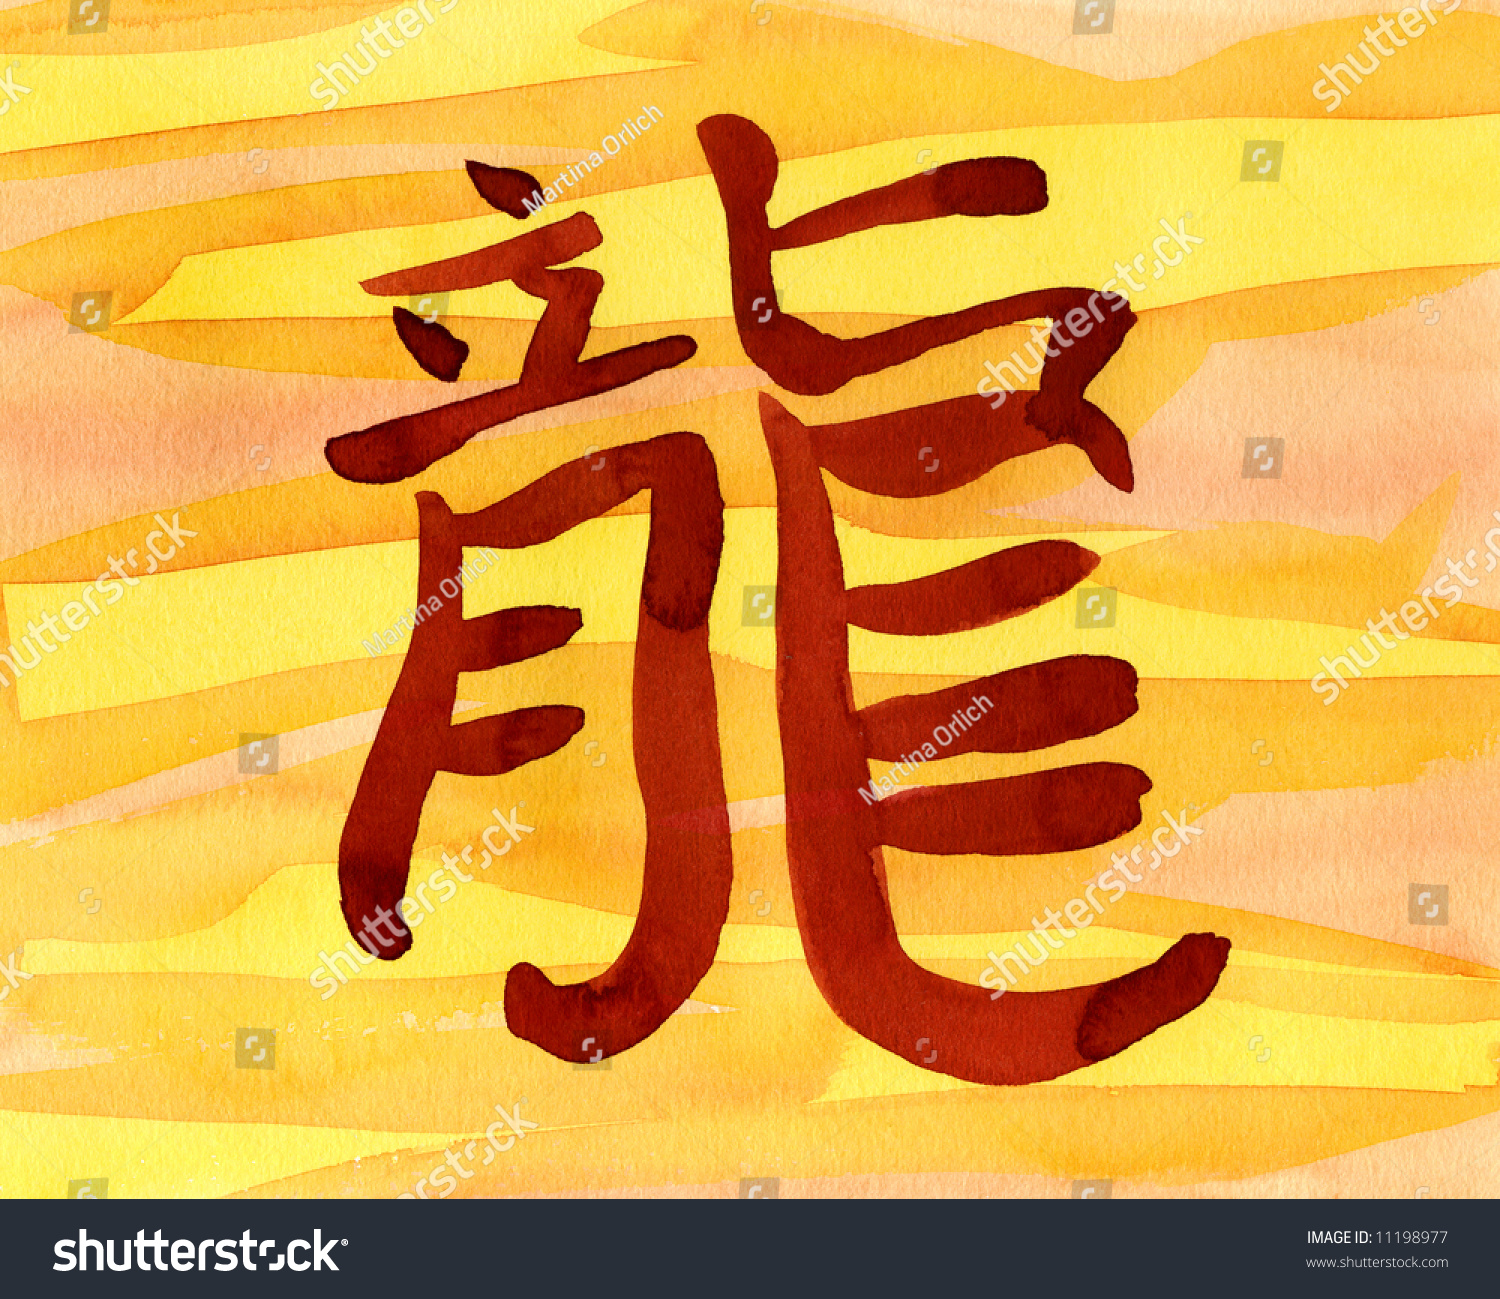 Beautiful Watercolor Background Showing Chinese Symbol Stock Photo